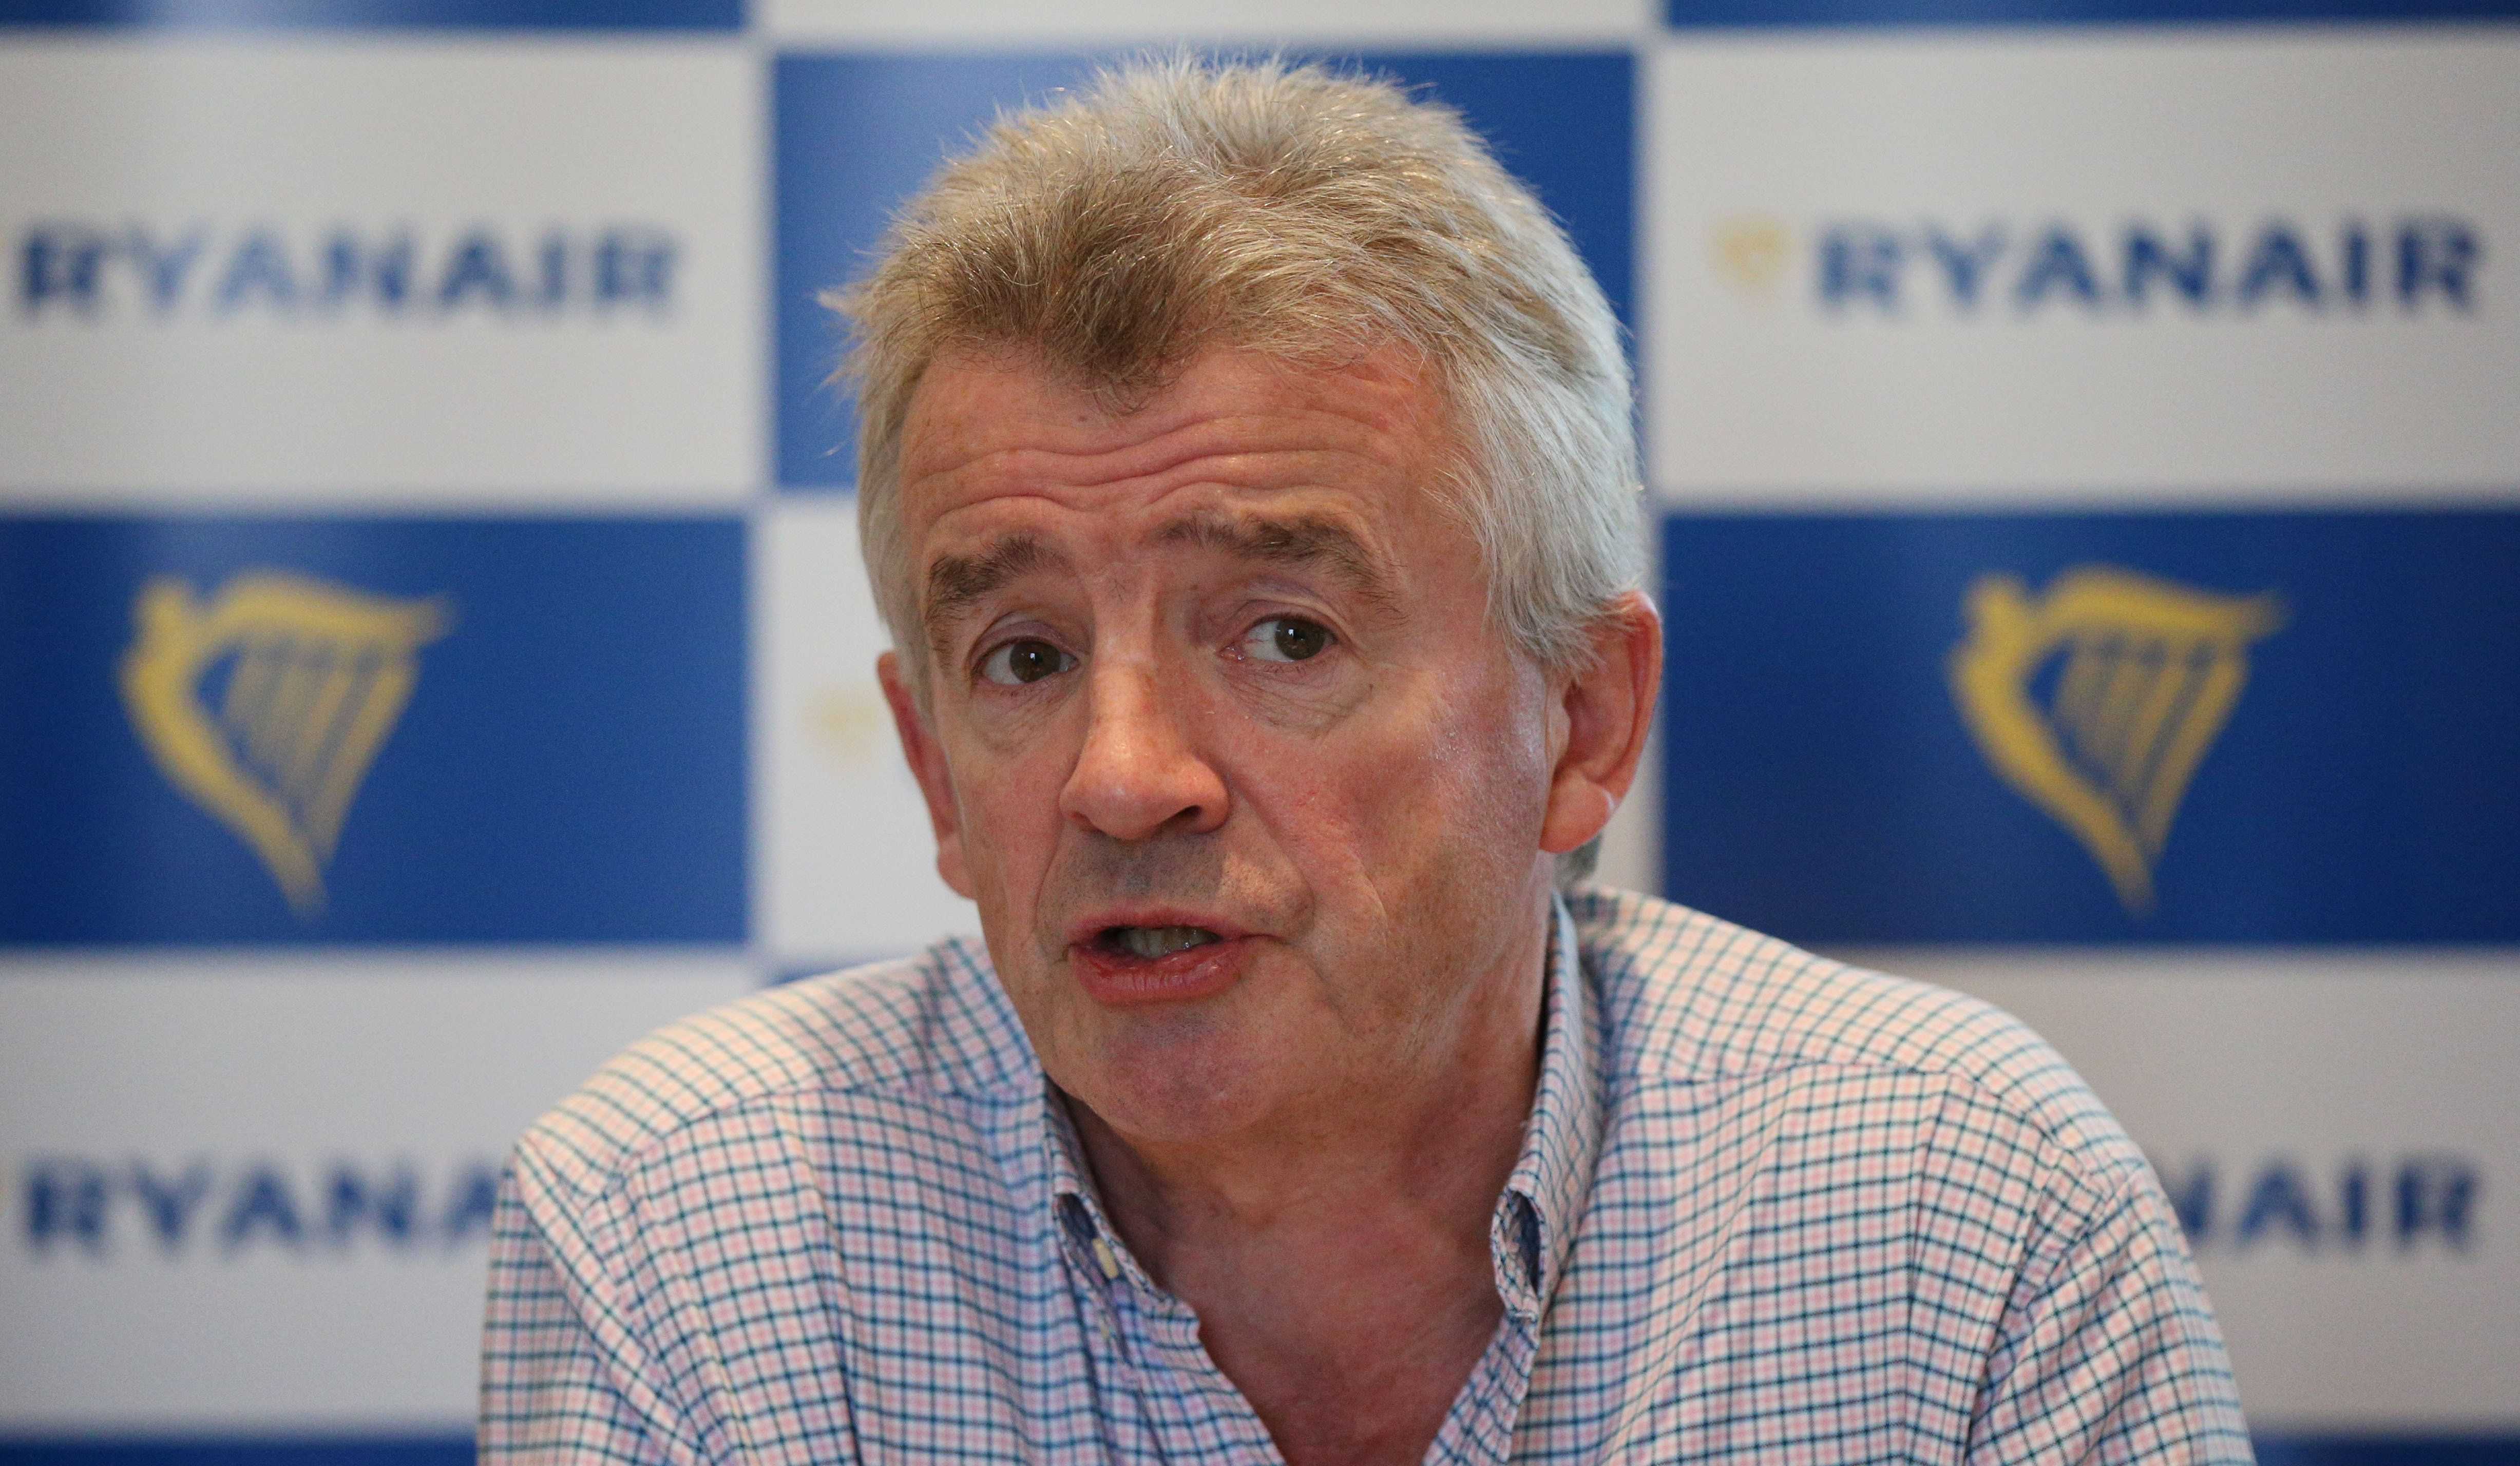 Ryanair Could Face Legal Action Over Flight Cancellations After Regulators Left